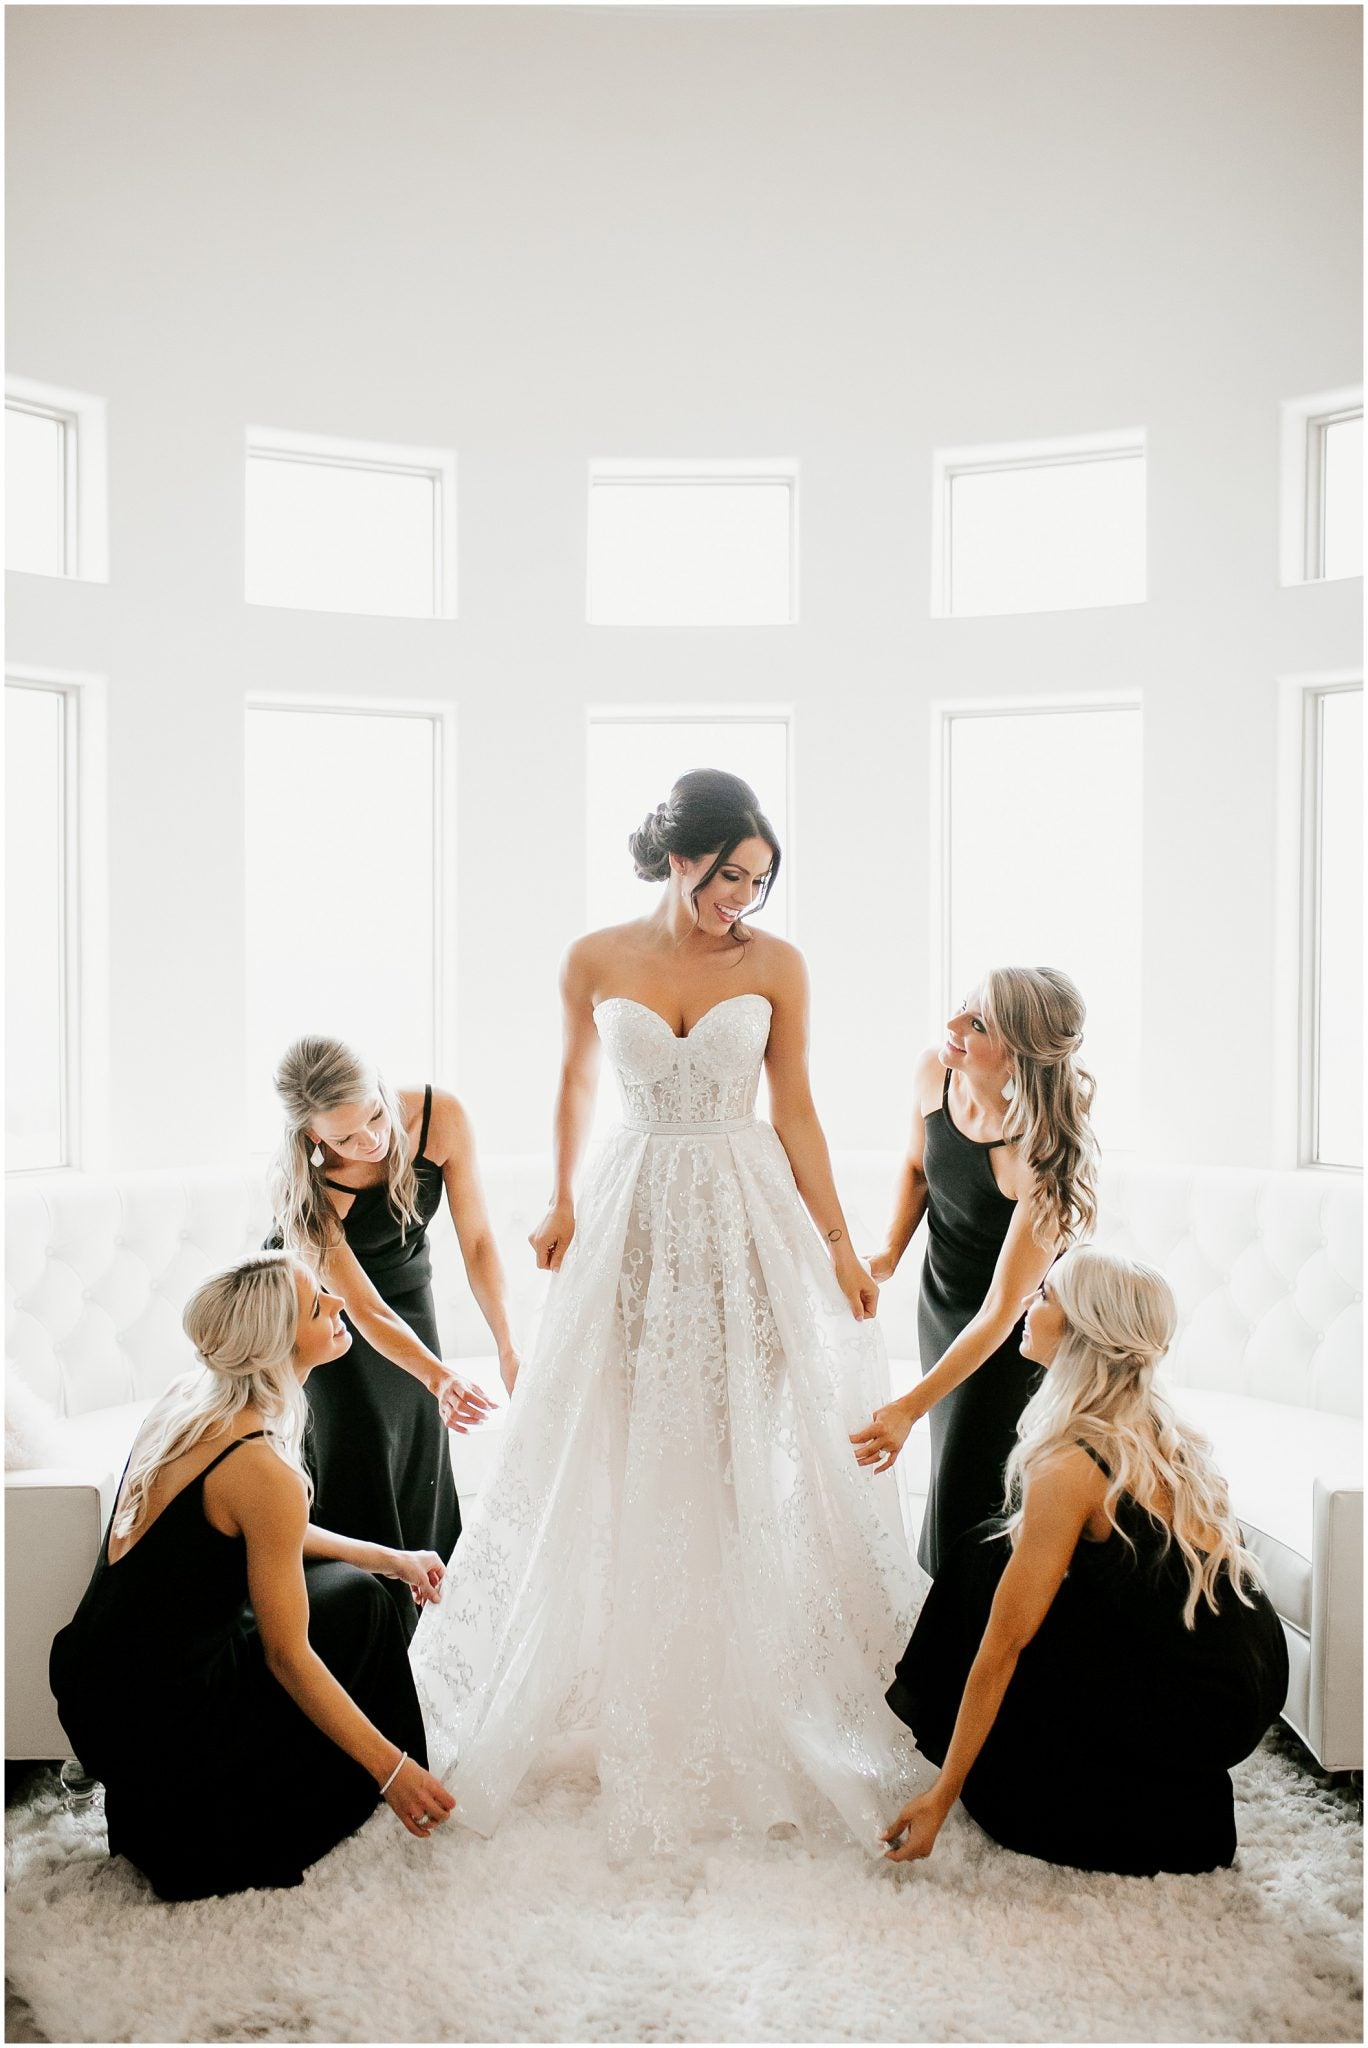 Bridesmaids posing with the bride in the center for a getting ready photo